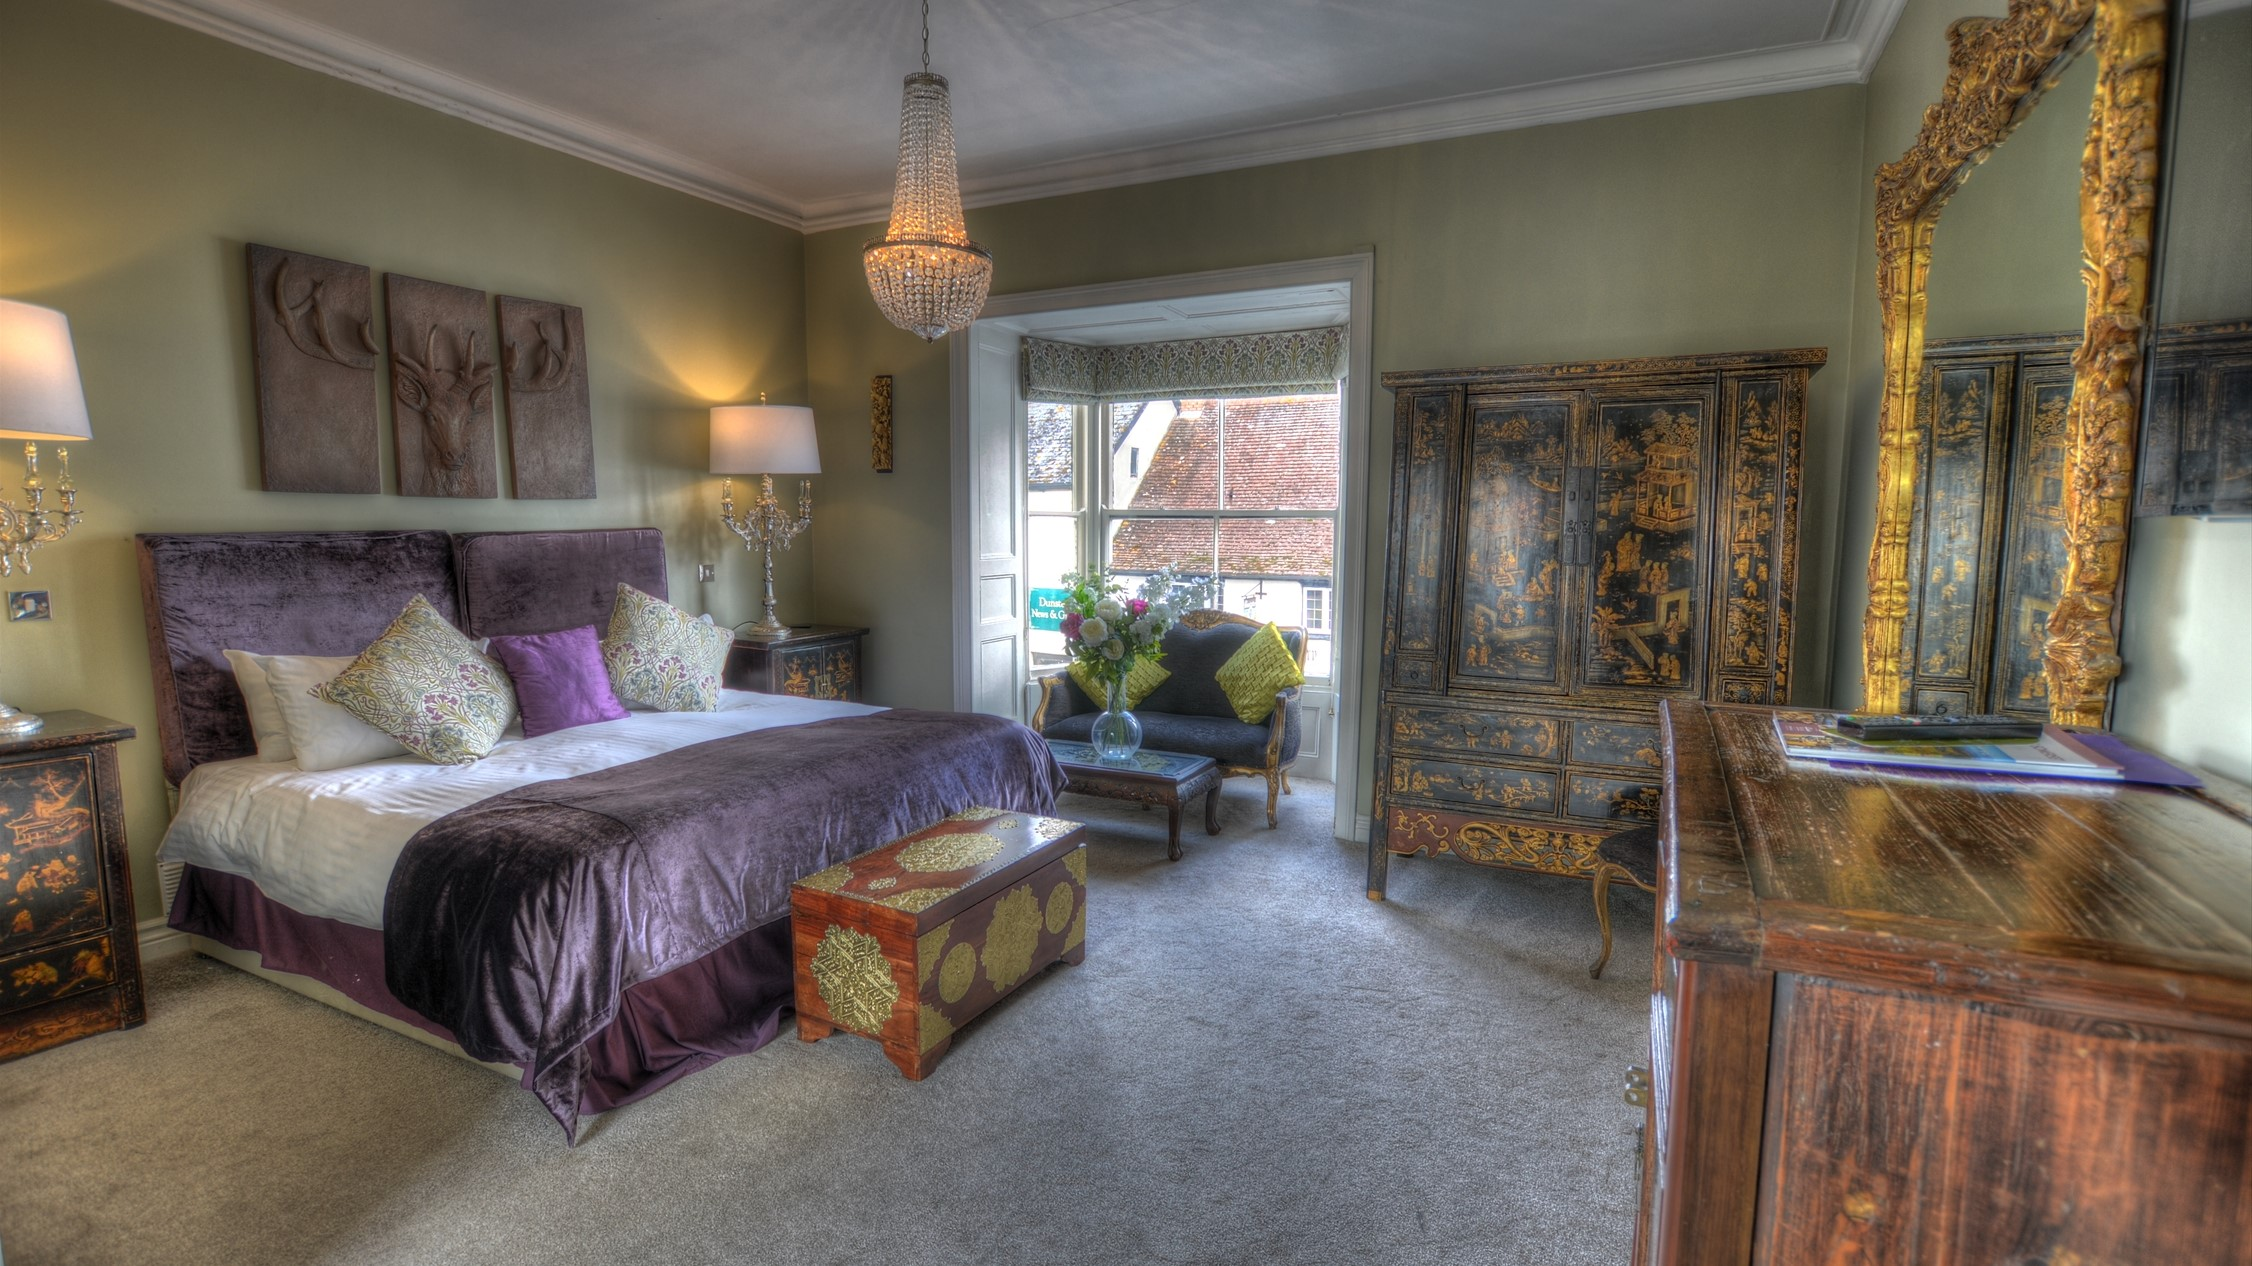 Luxury Hotel Rooms in Dunster